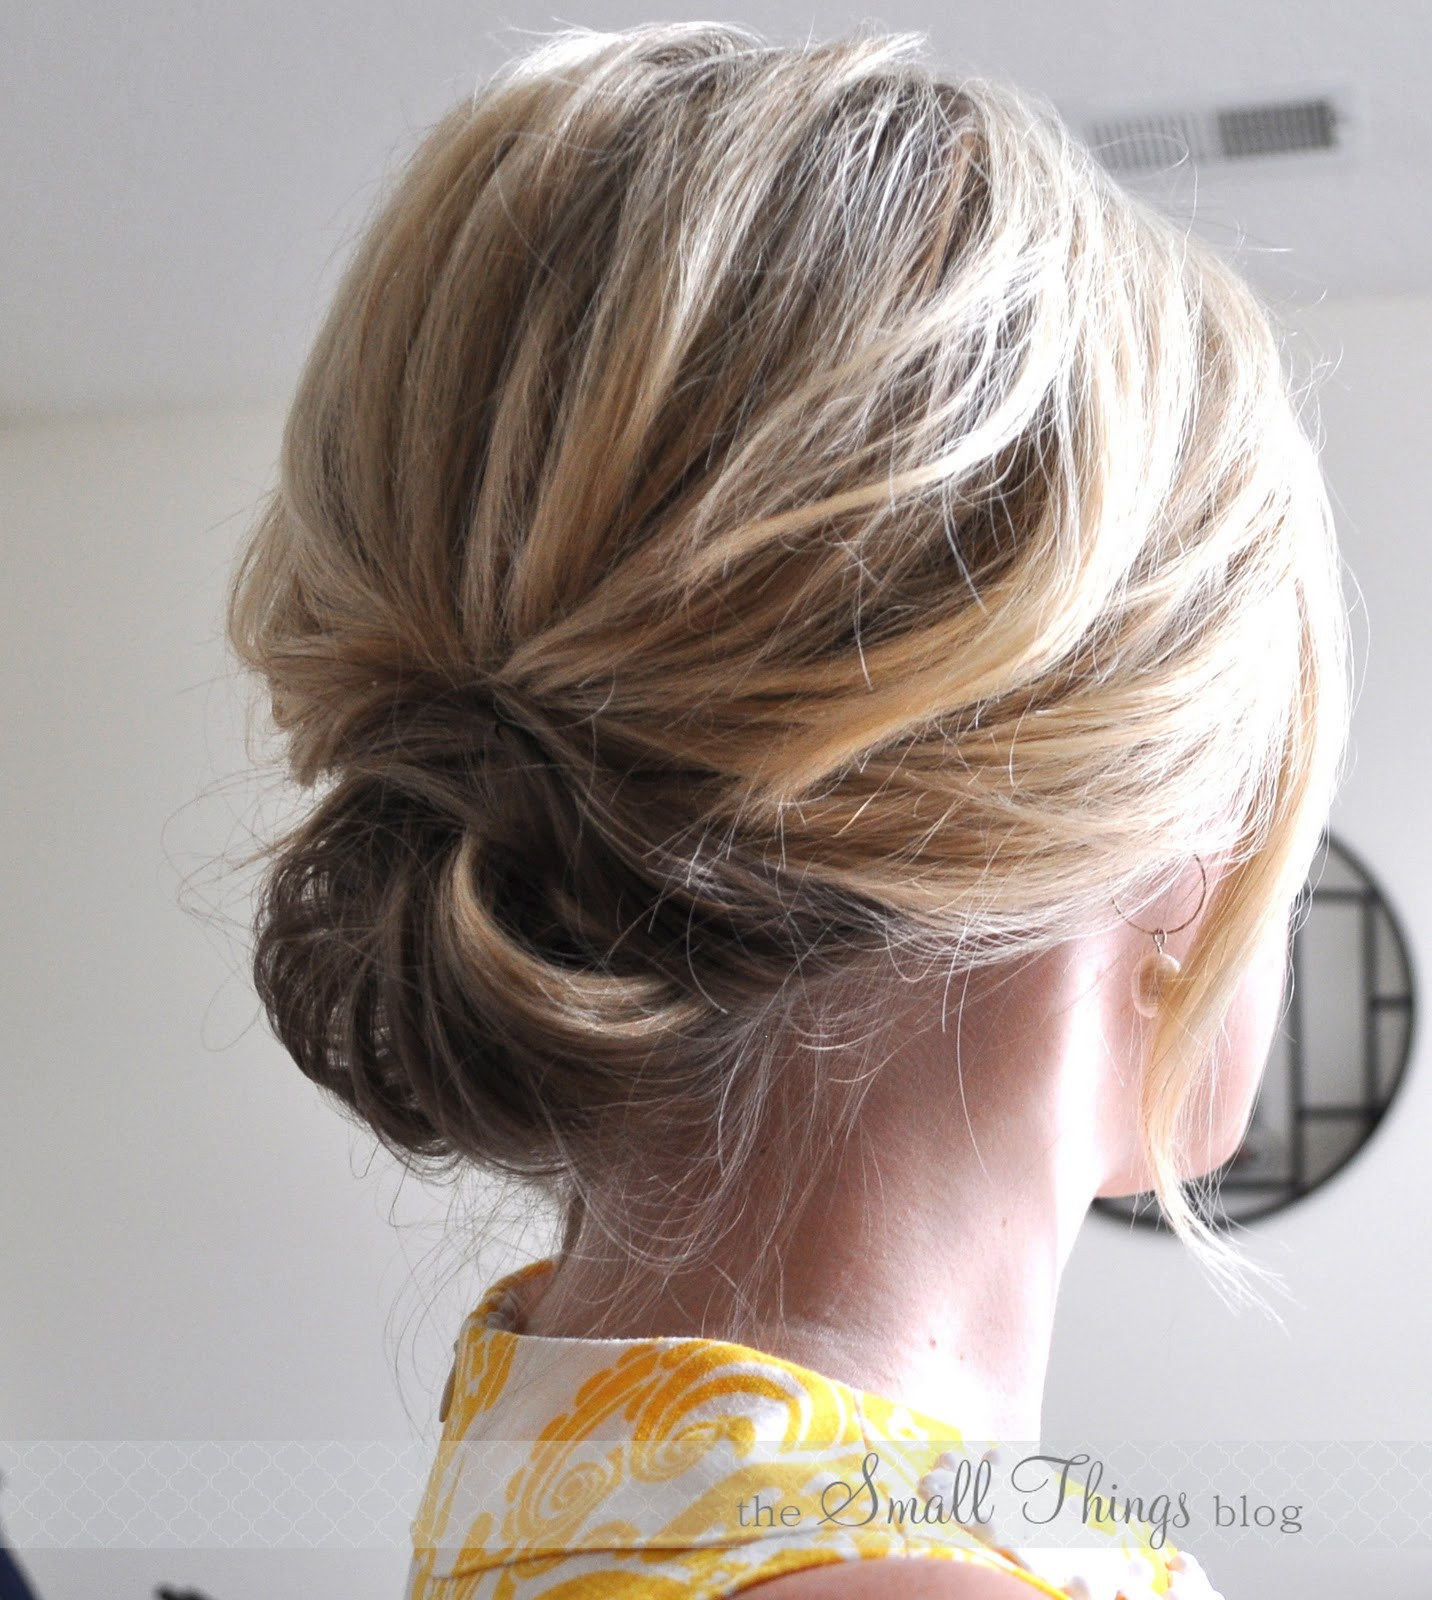 Best ideas about Updo Hairstyles For Short Hair . Save or Pin The Chic Updo – The Small Things Blog Now.